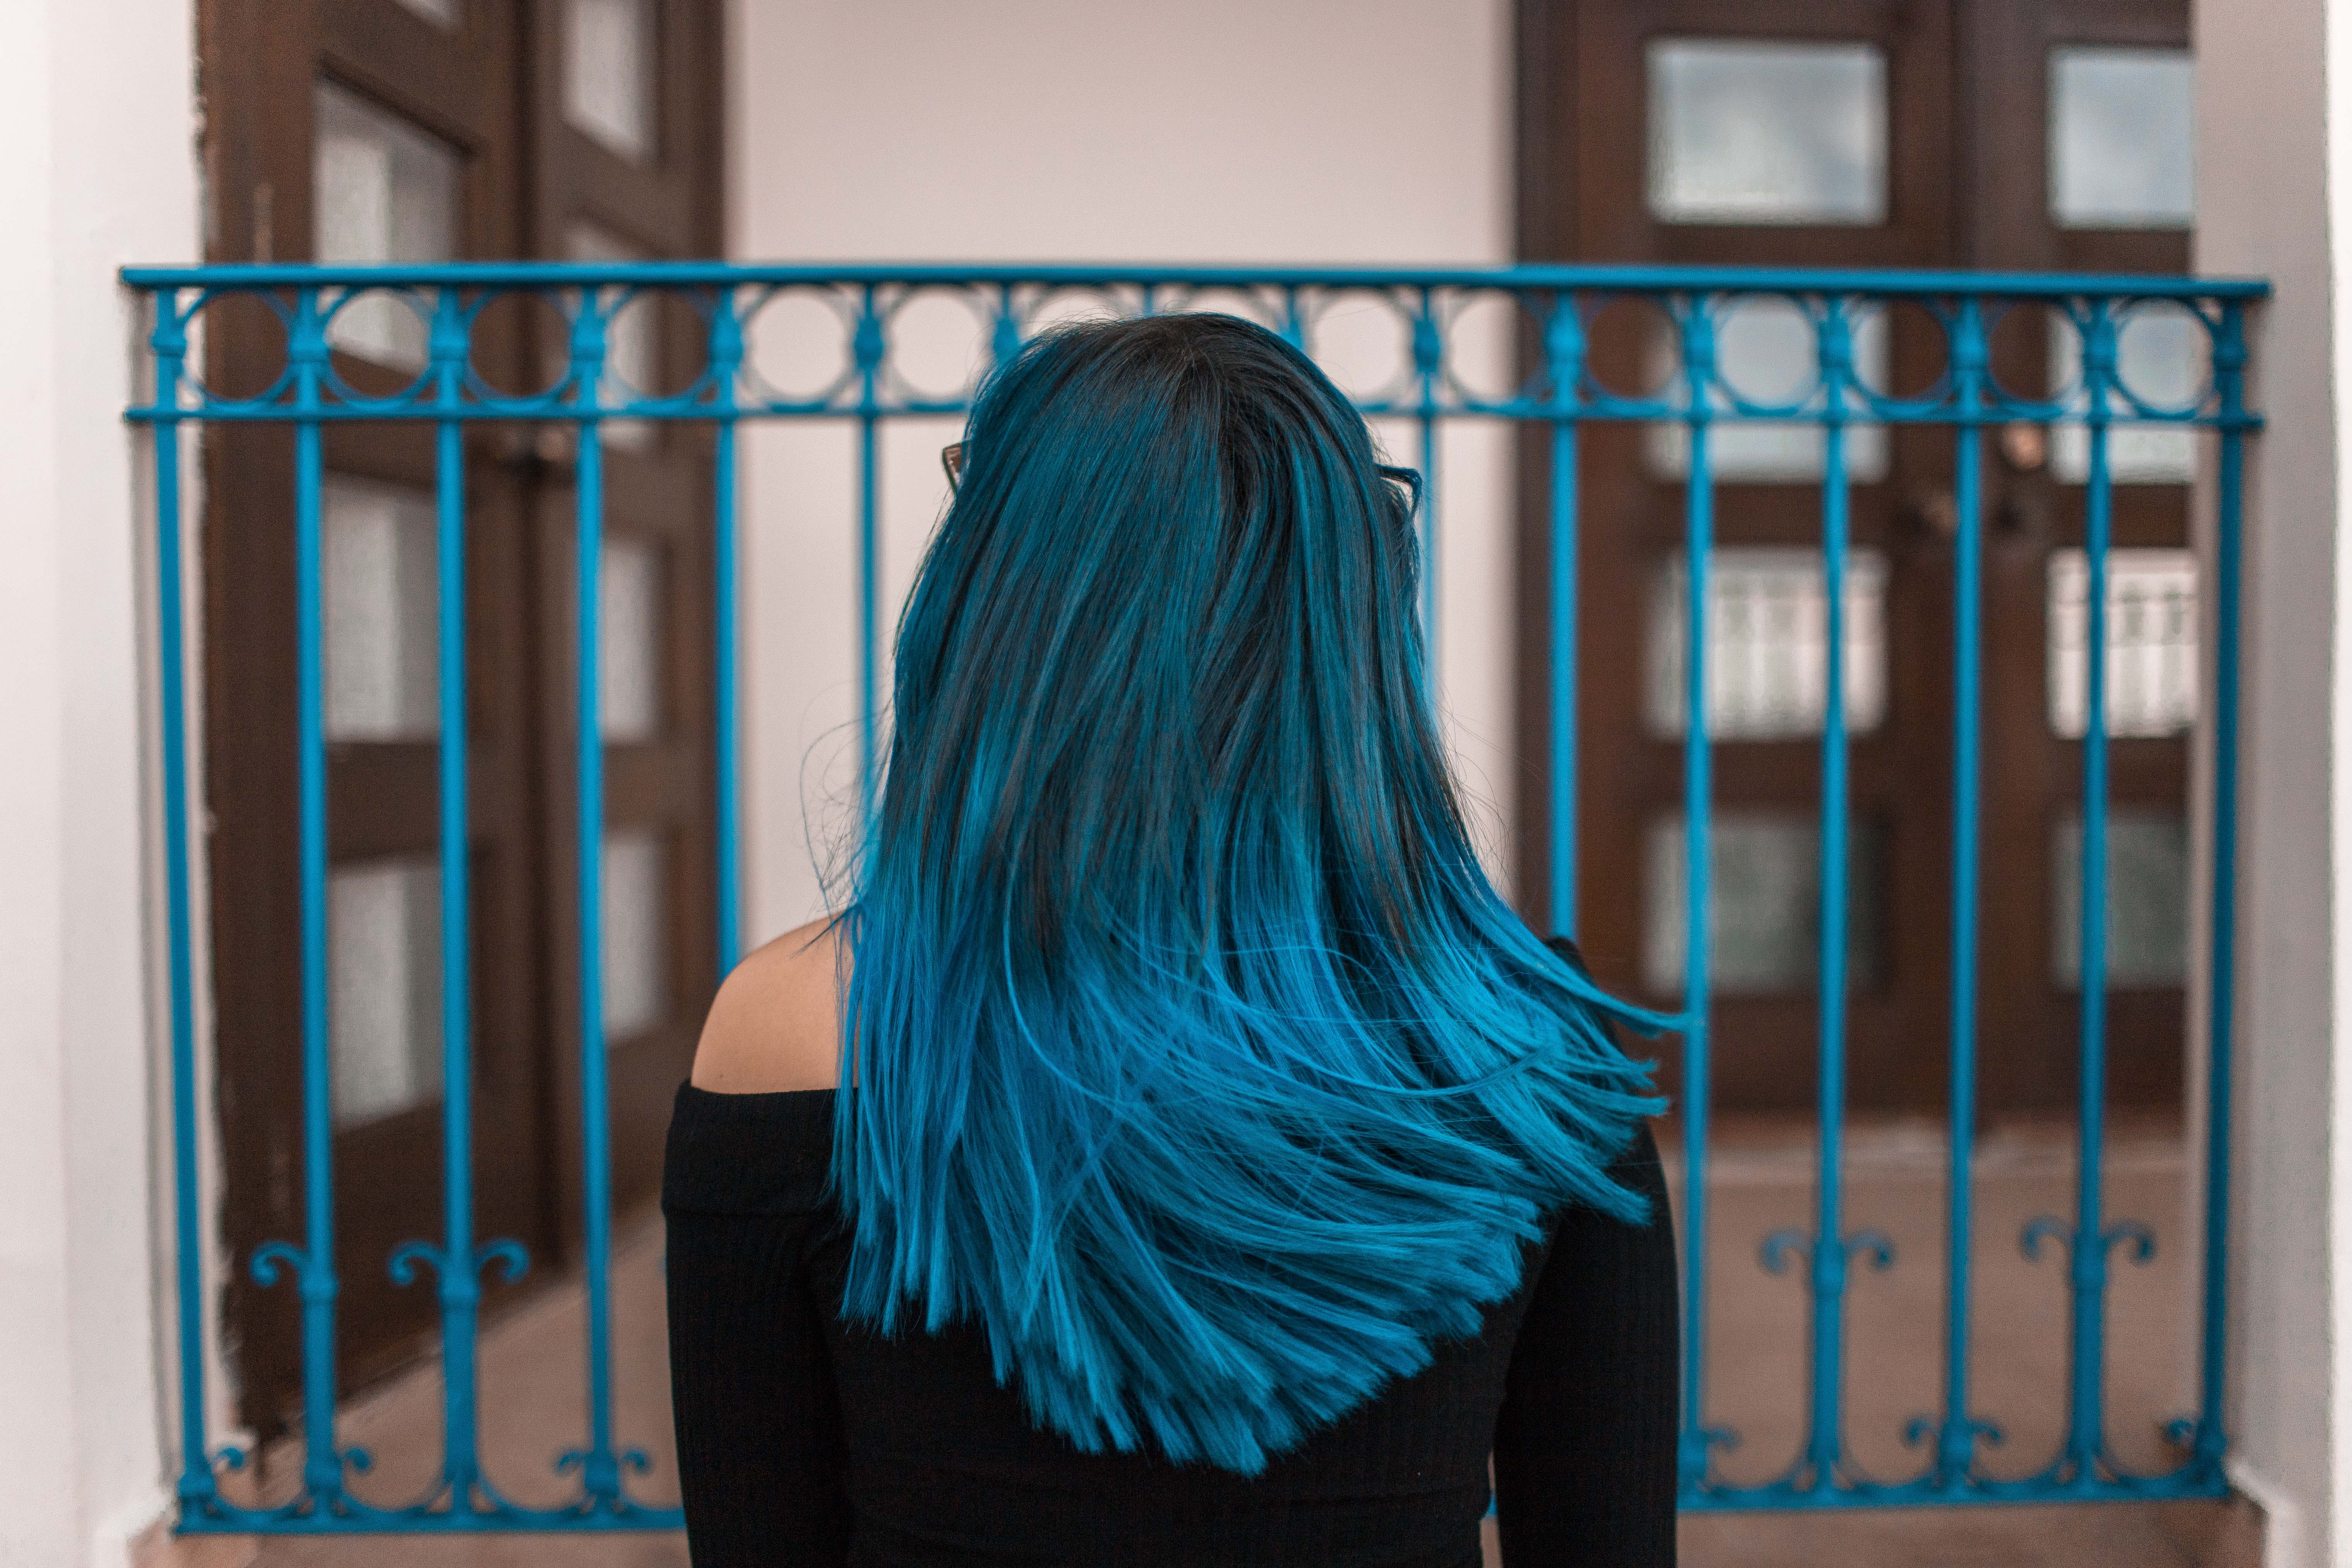 Blue Haired Woman Facing Metal Fence